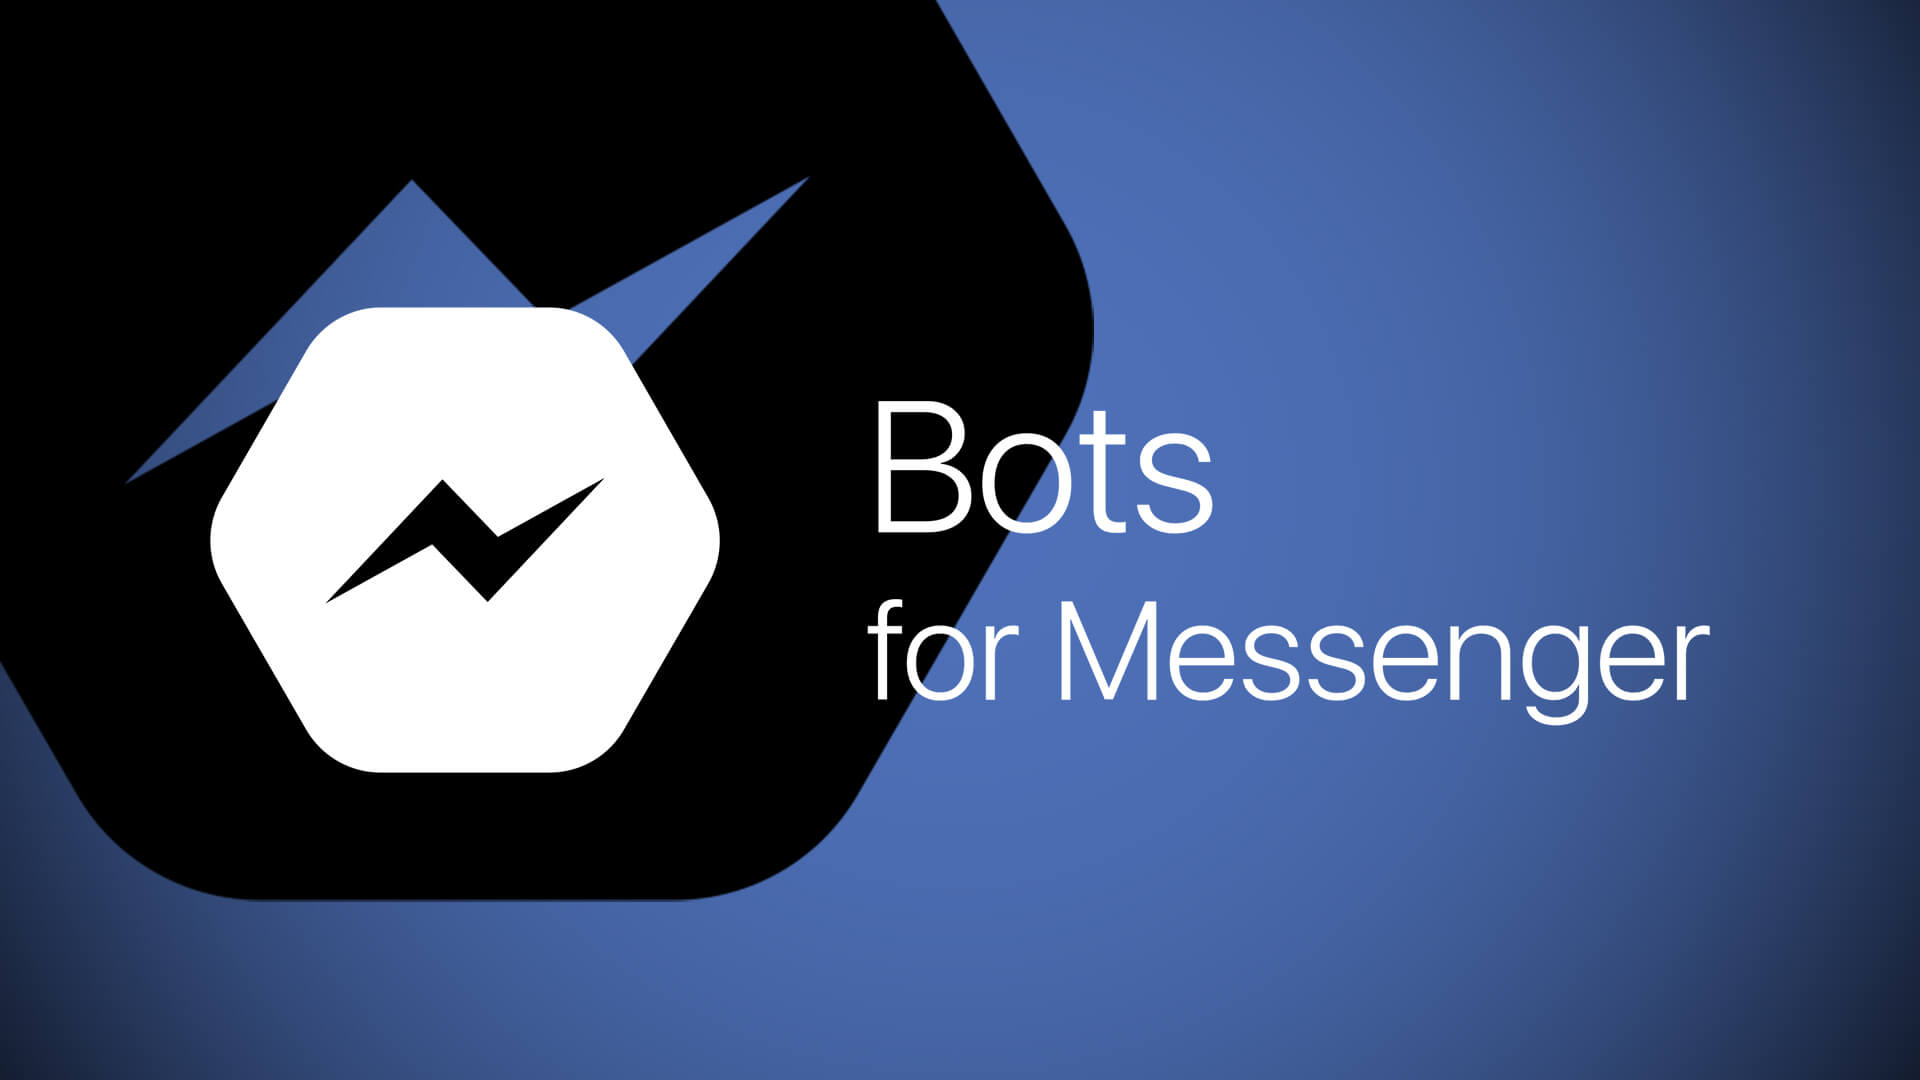 facebook-bots-messenger2-1920